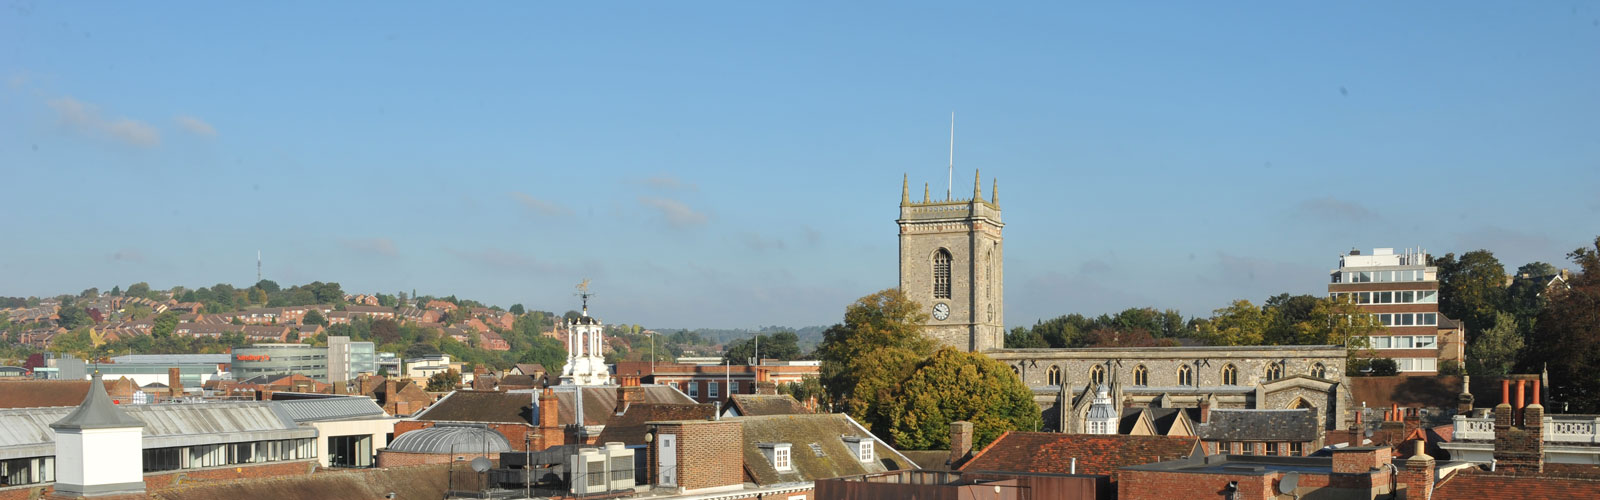 High-Wycombe-skyline-3-banner